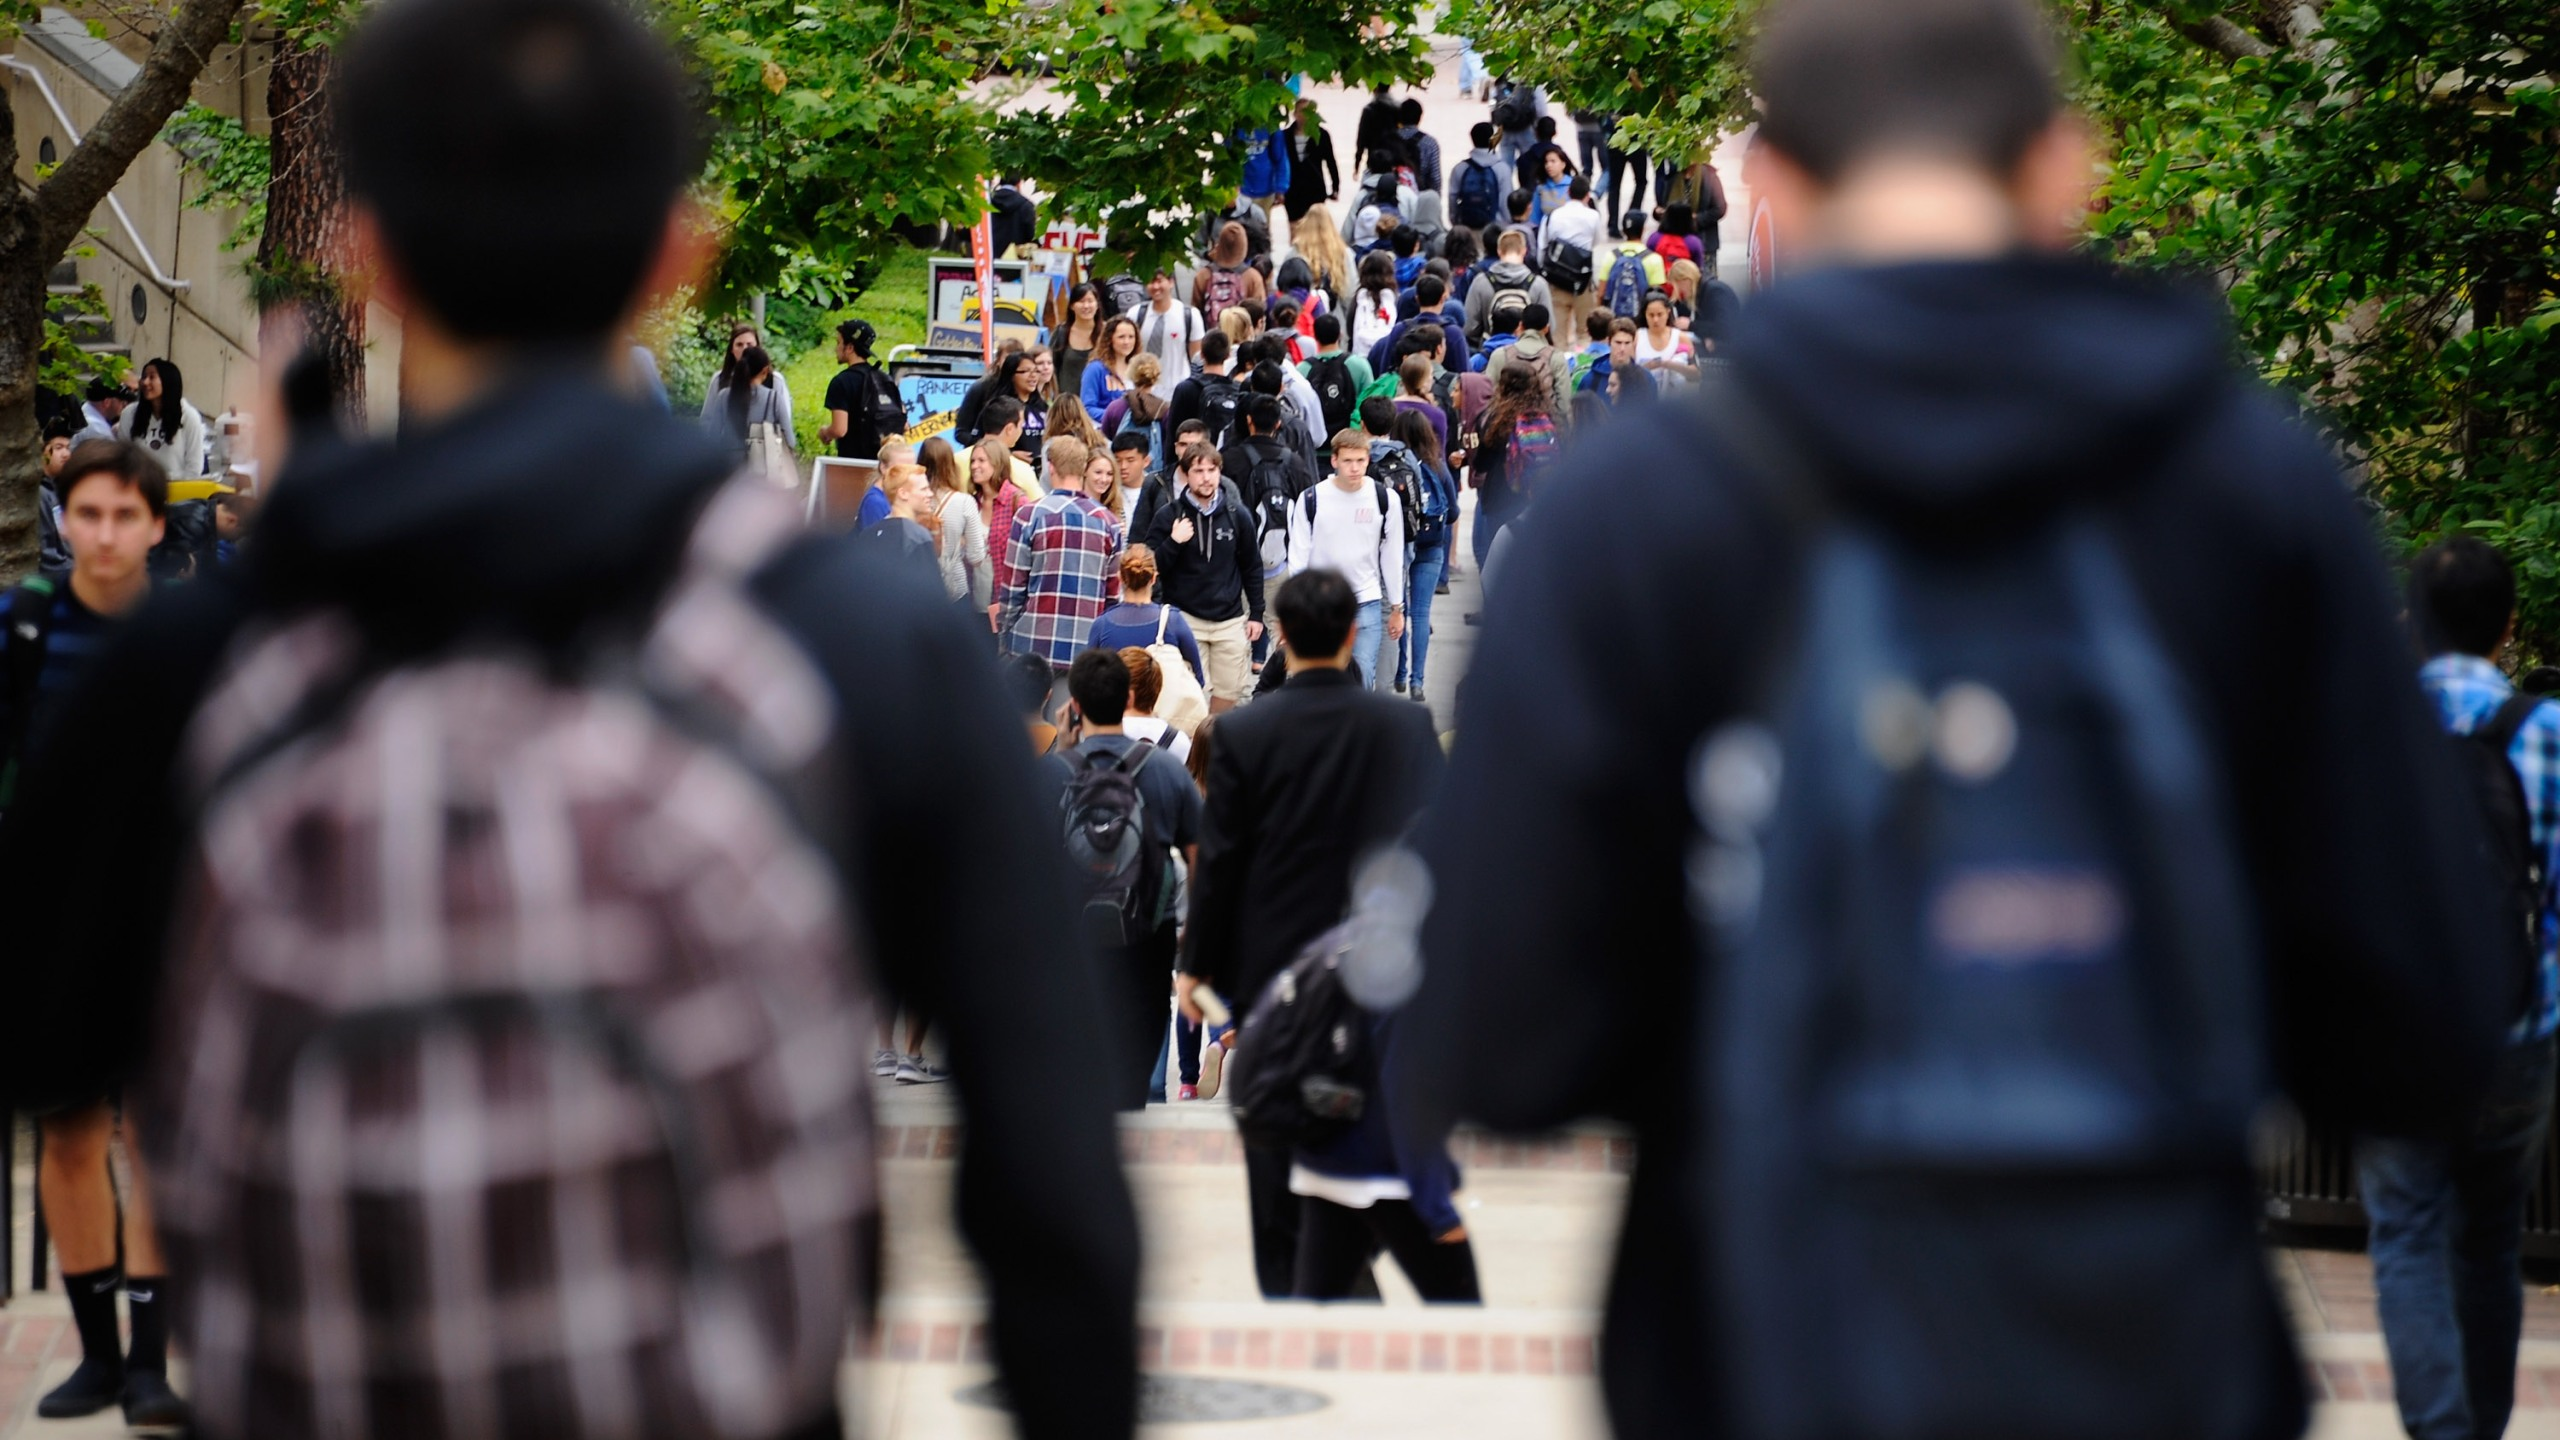 Students walk across the campus of UCLA on April 23, 2012. (Credit: Kevork Djansezian / Getty Images)